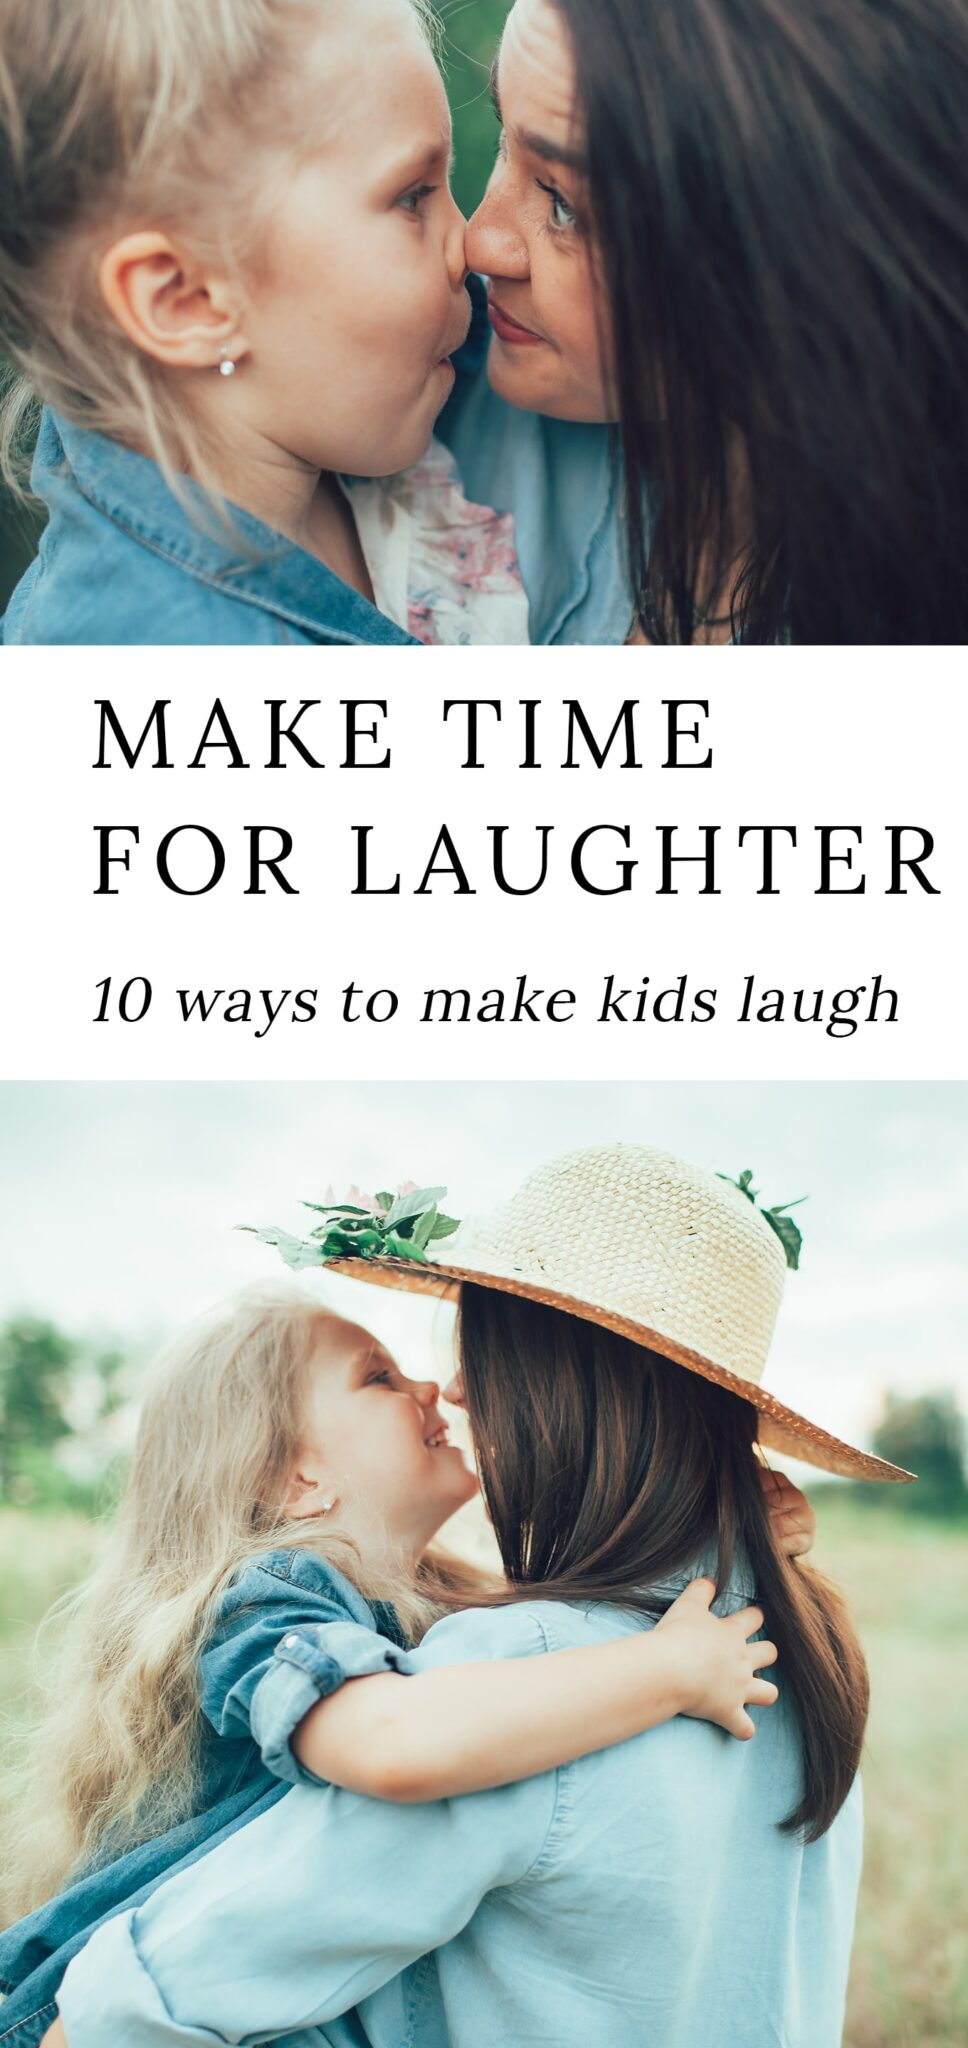 5 reasons why you should laugh every day